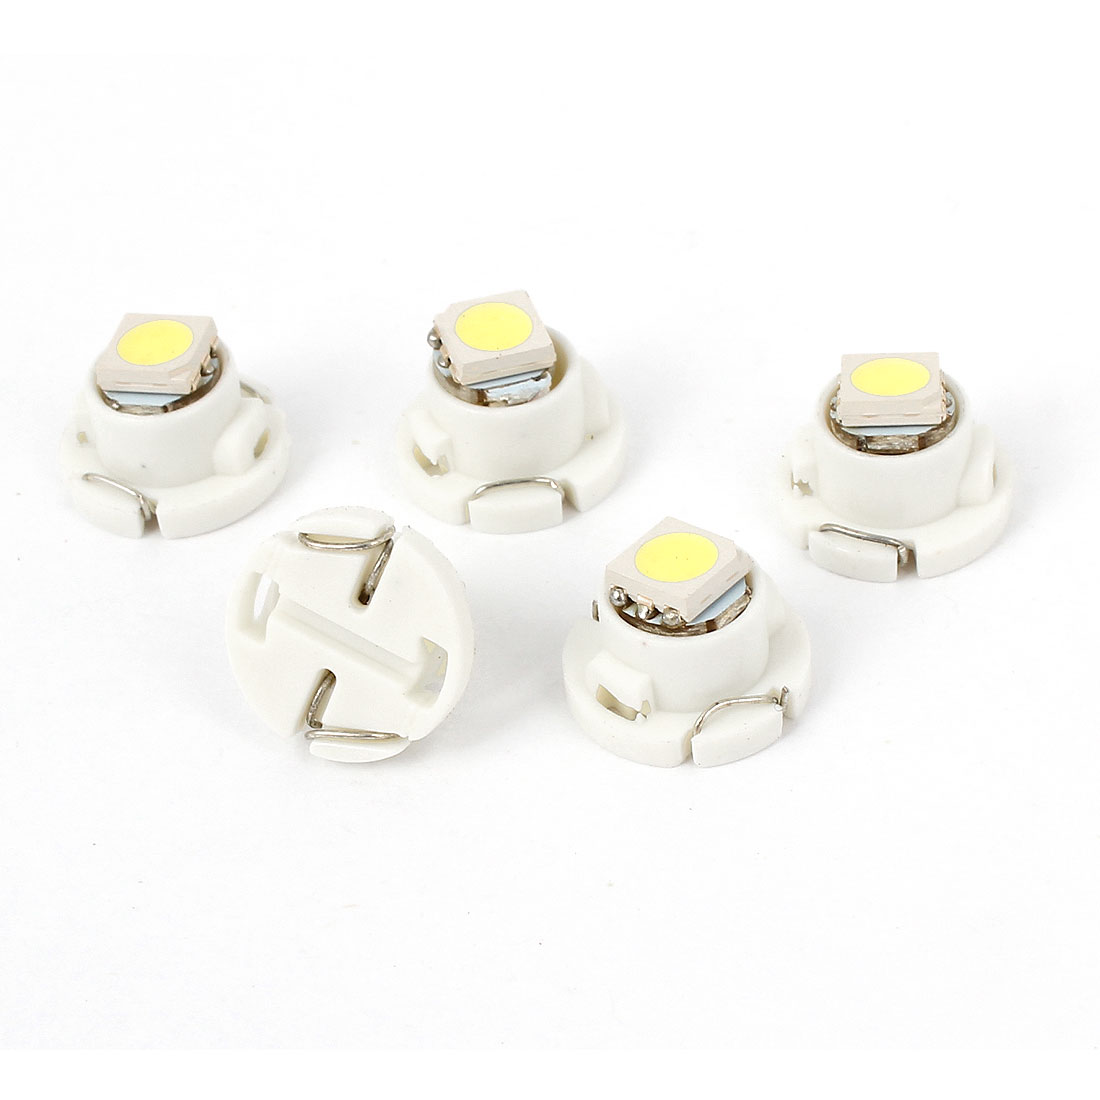 5 Pcs T4.7 Socket White 5050 LED SMD Dashboard Meter Light Bulb 12V Internal